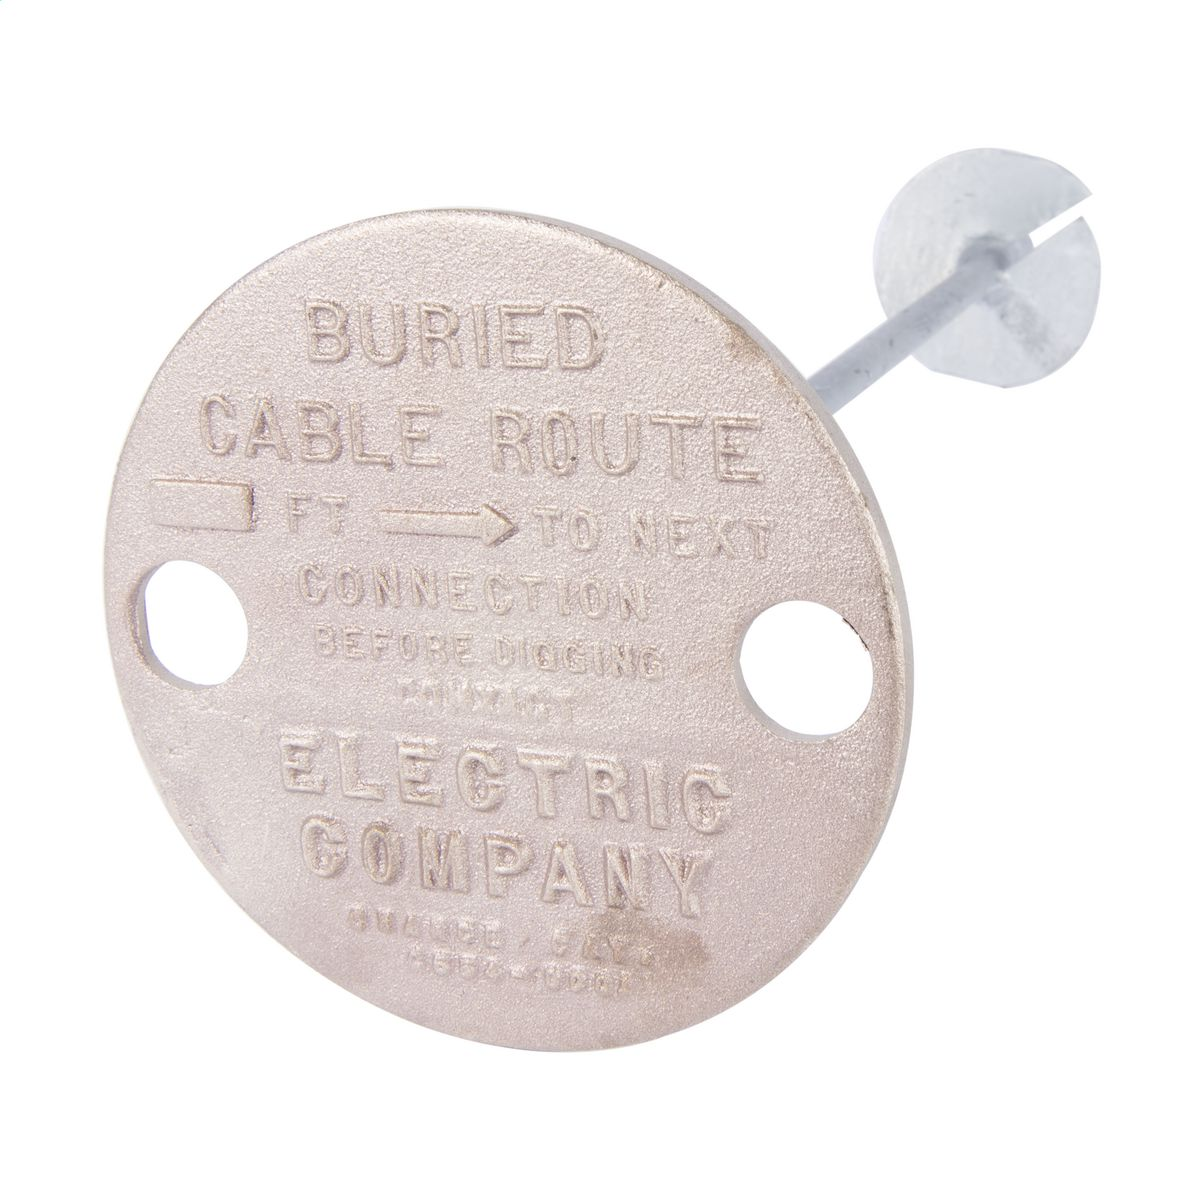 Marker Cable Route Electric Co Brand Hubbell Power